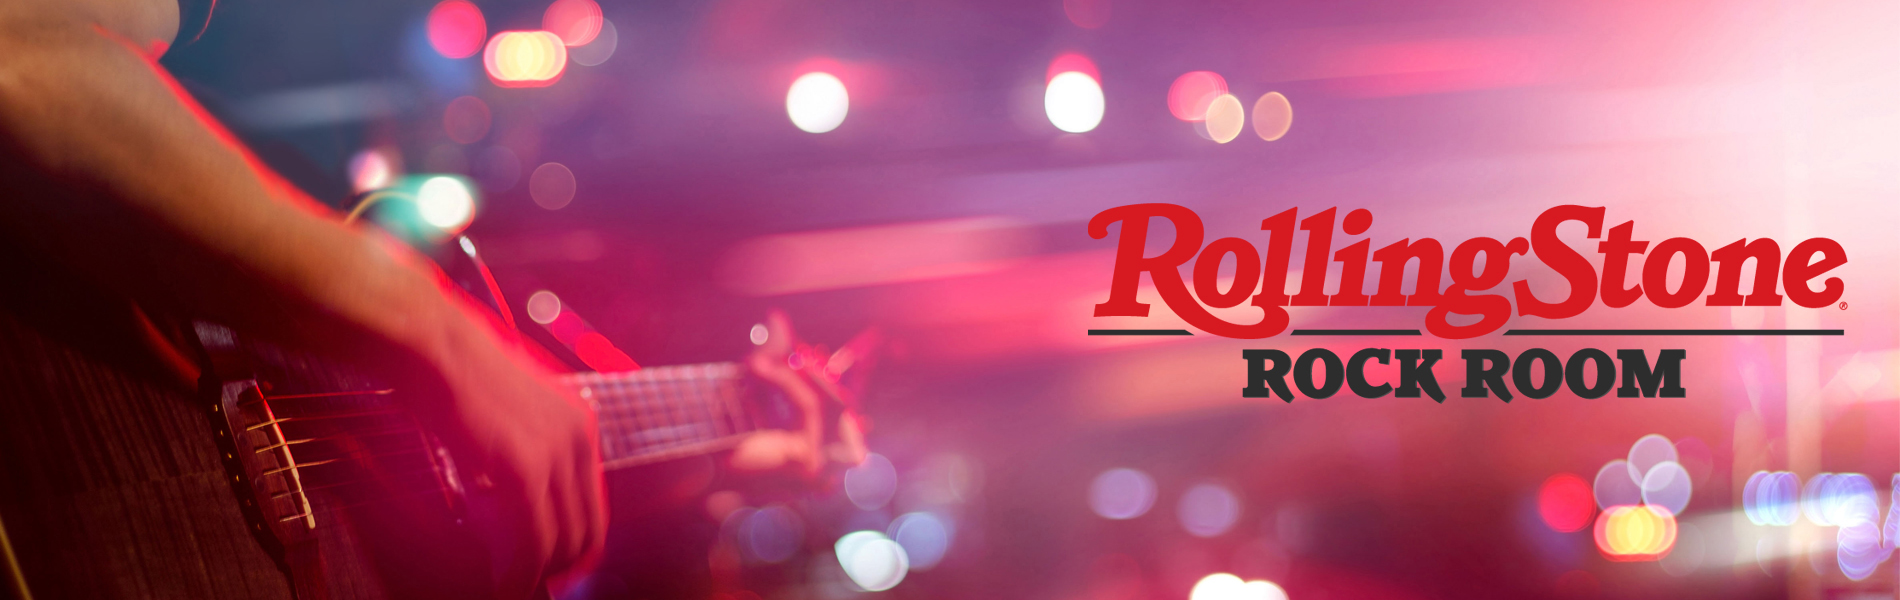 Introducing Rolling Stone Rock Room Aboard Holland America Line